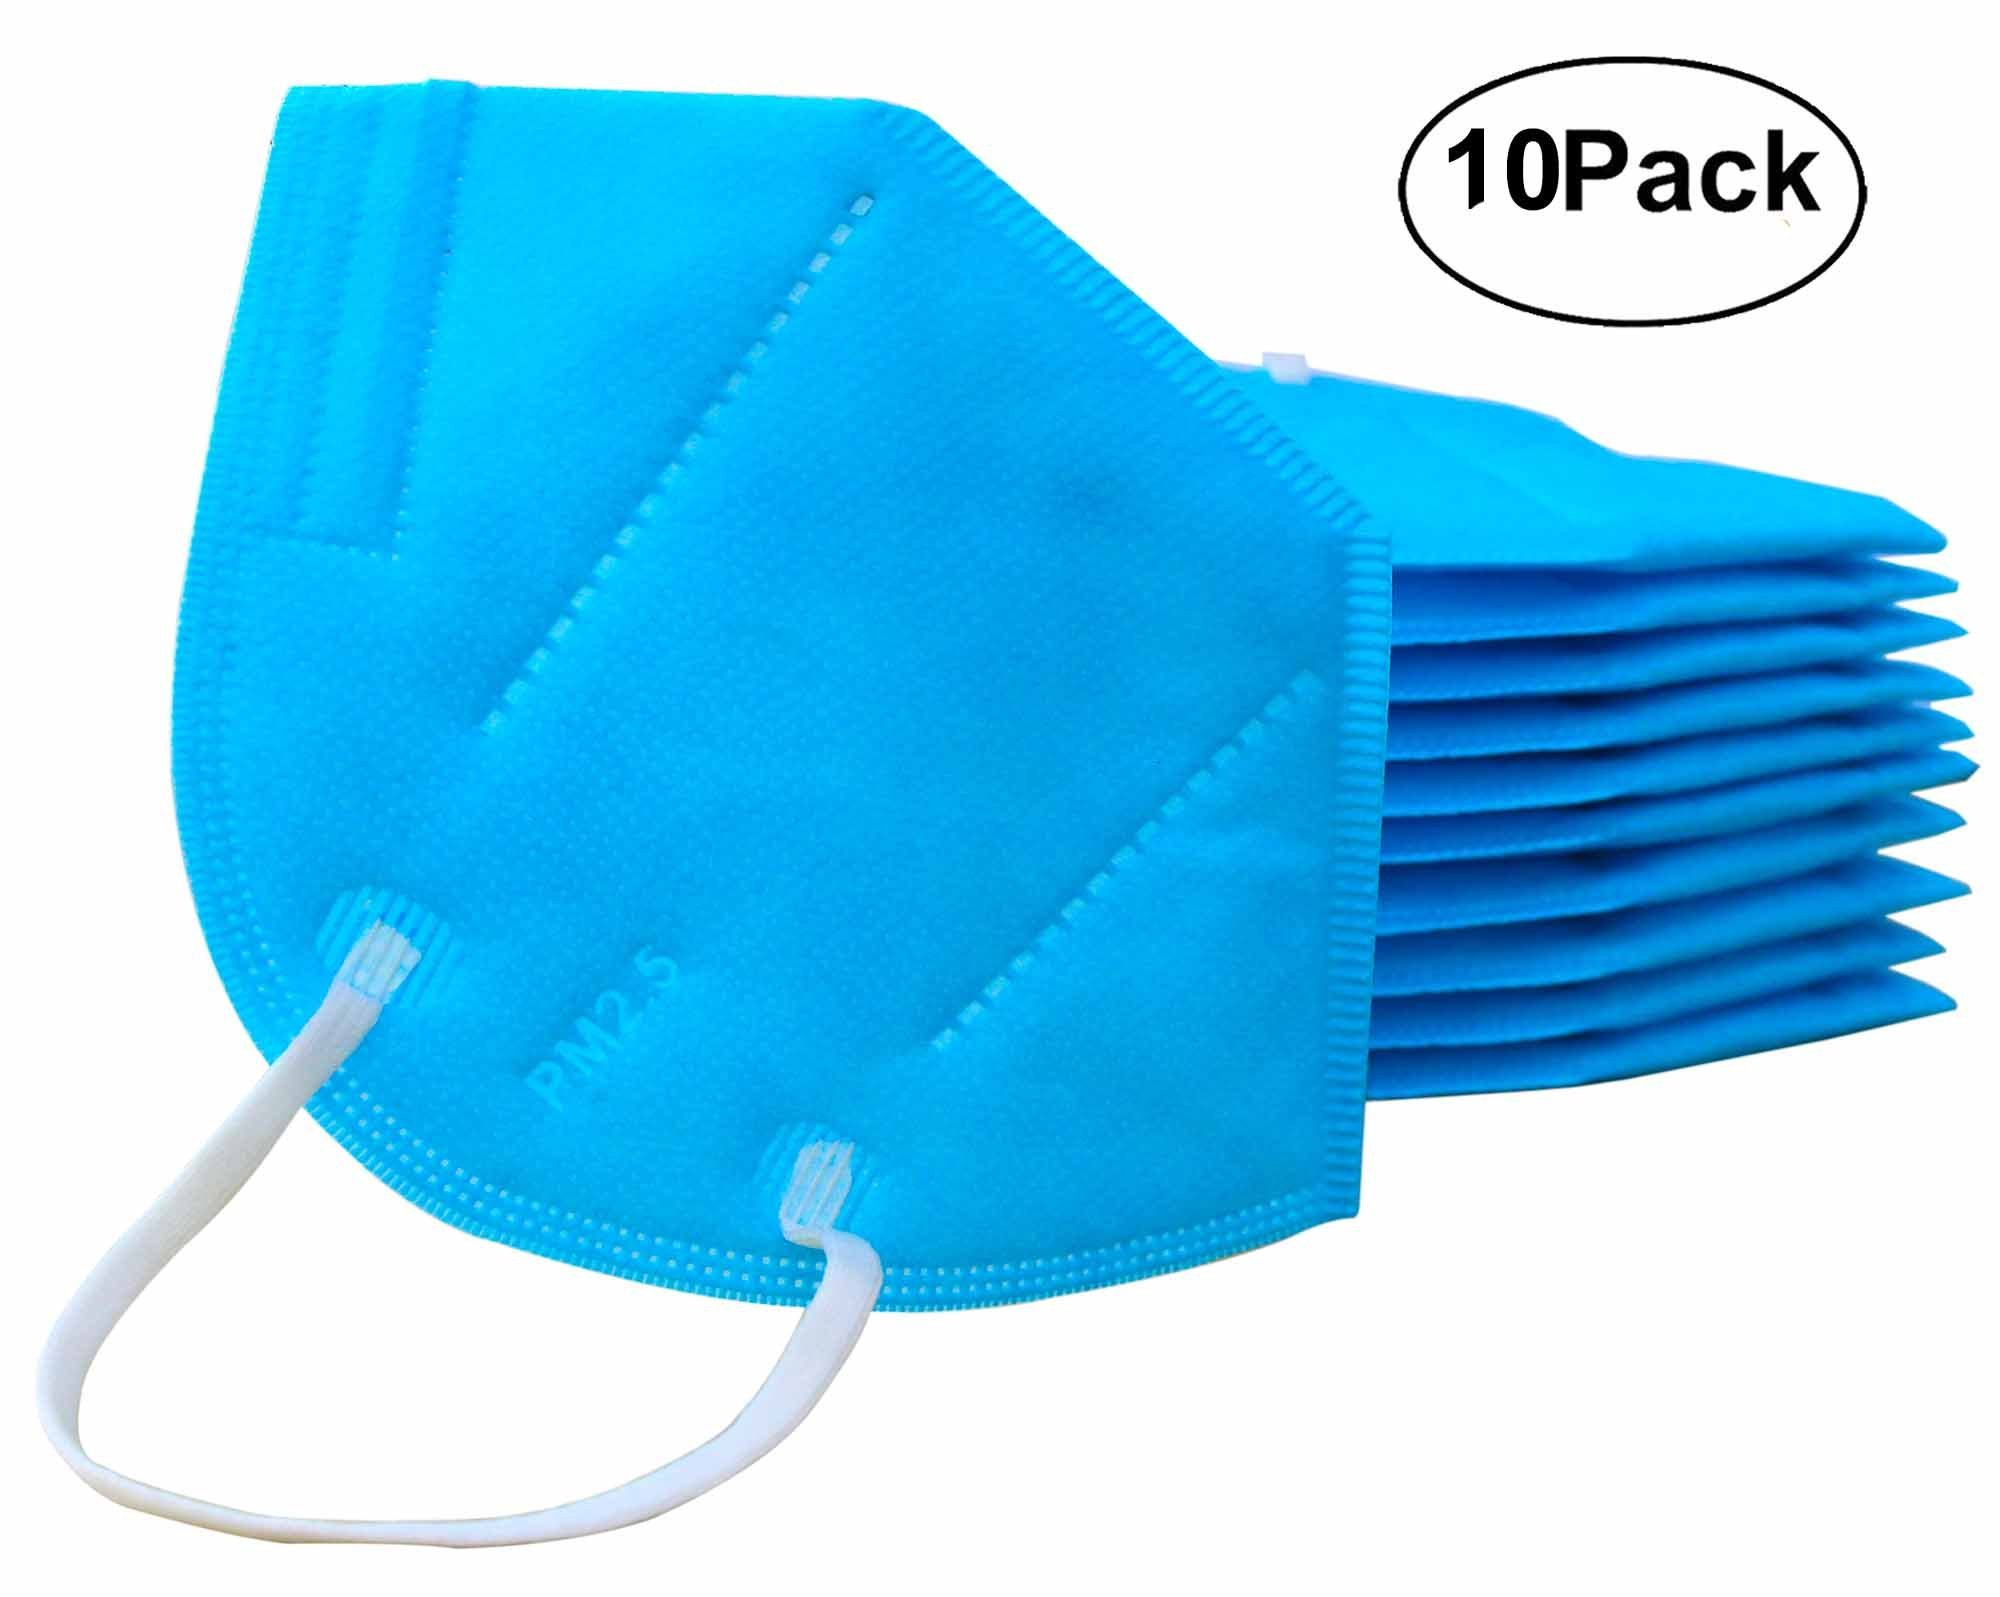 Pollution Mask Military Grade Anti Air Dust and Smoke Pollution Mask with Adjustable Straps and a Washable Respirator Mask Made For Men Women and Kids N99 N95 Mask